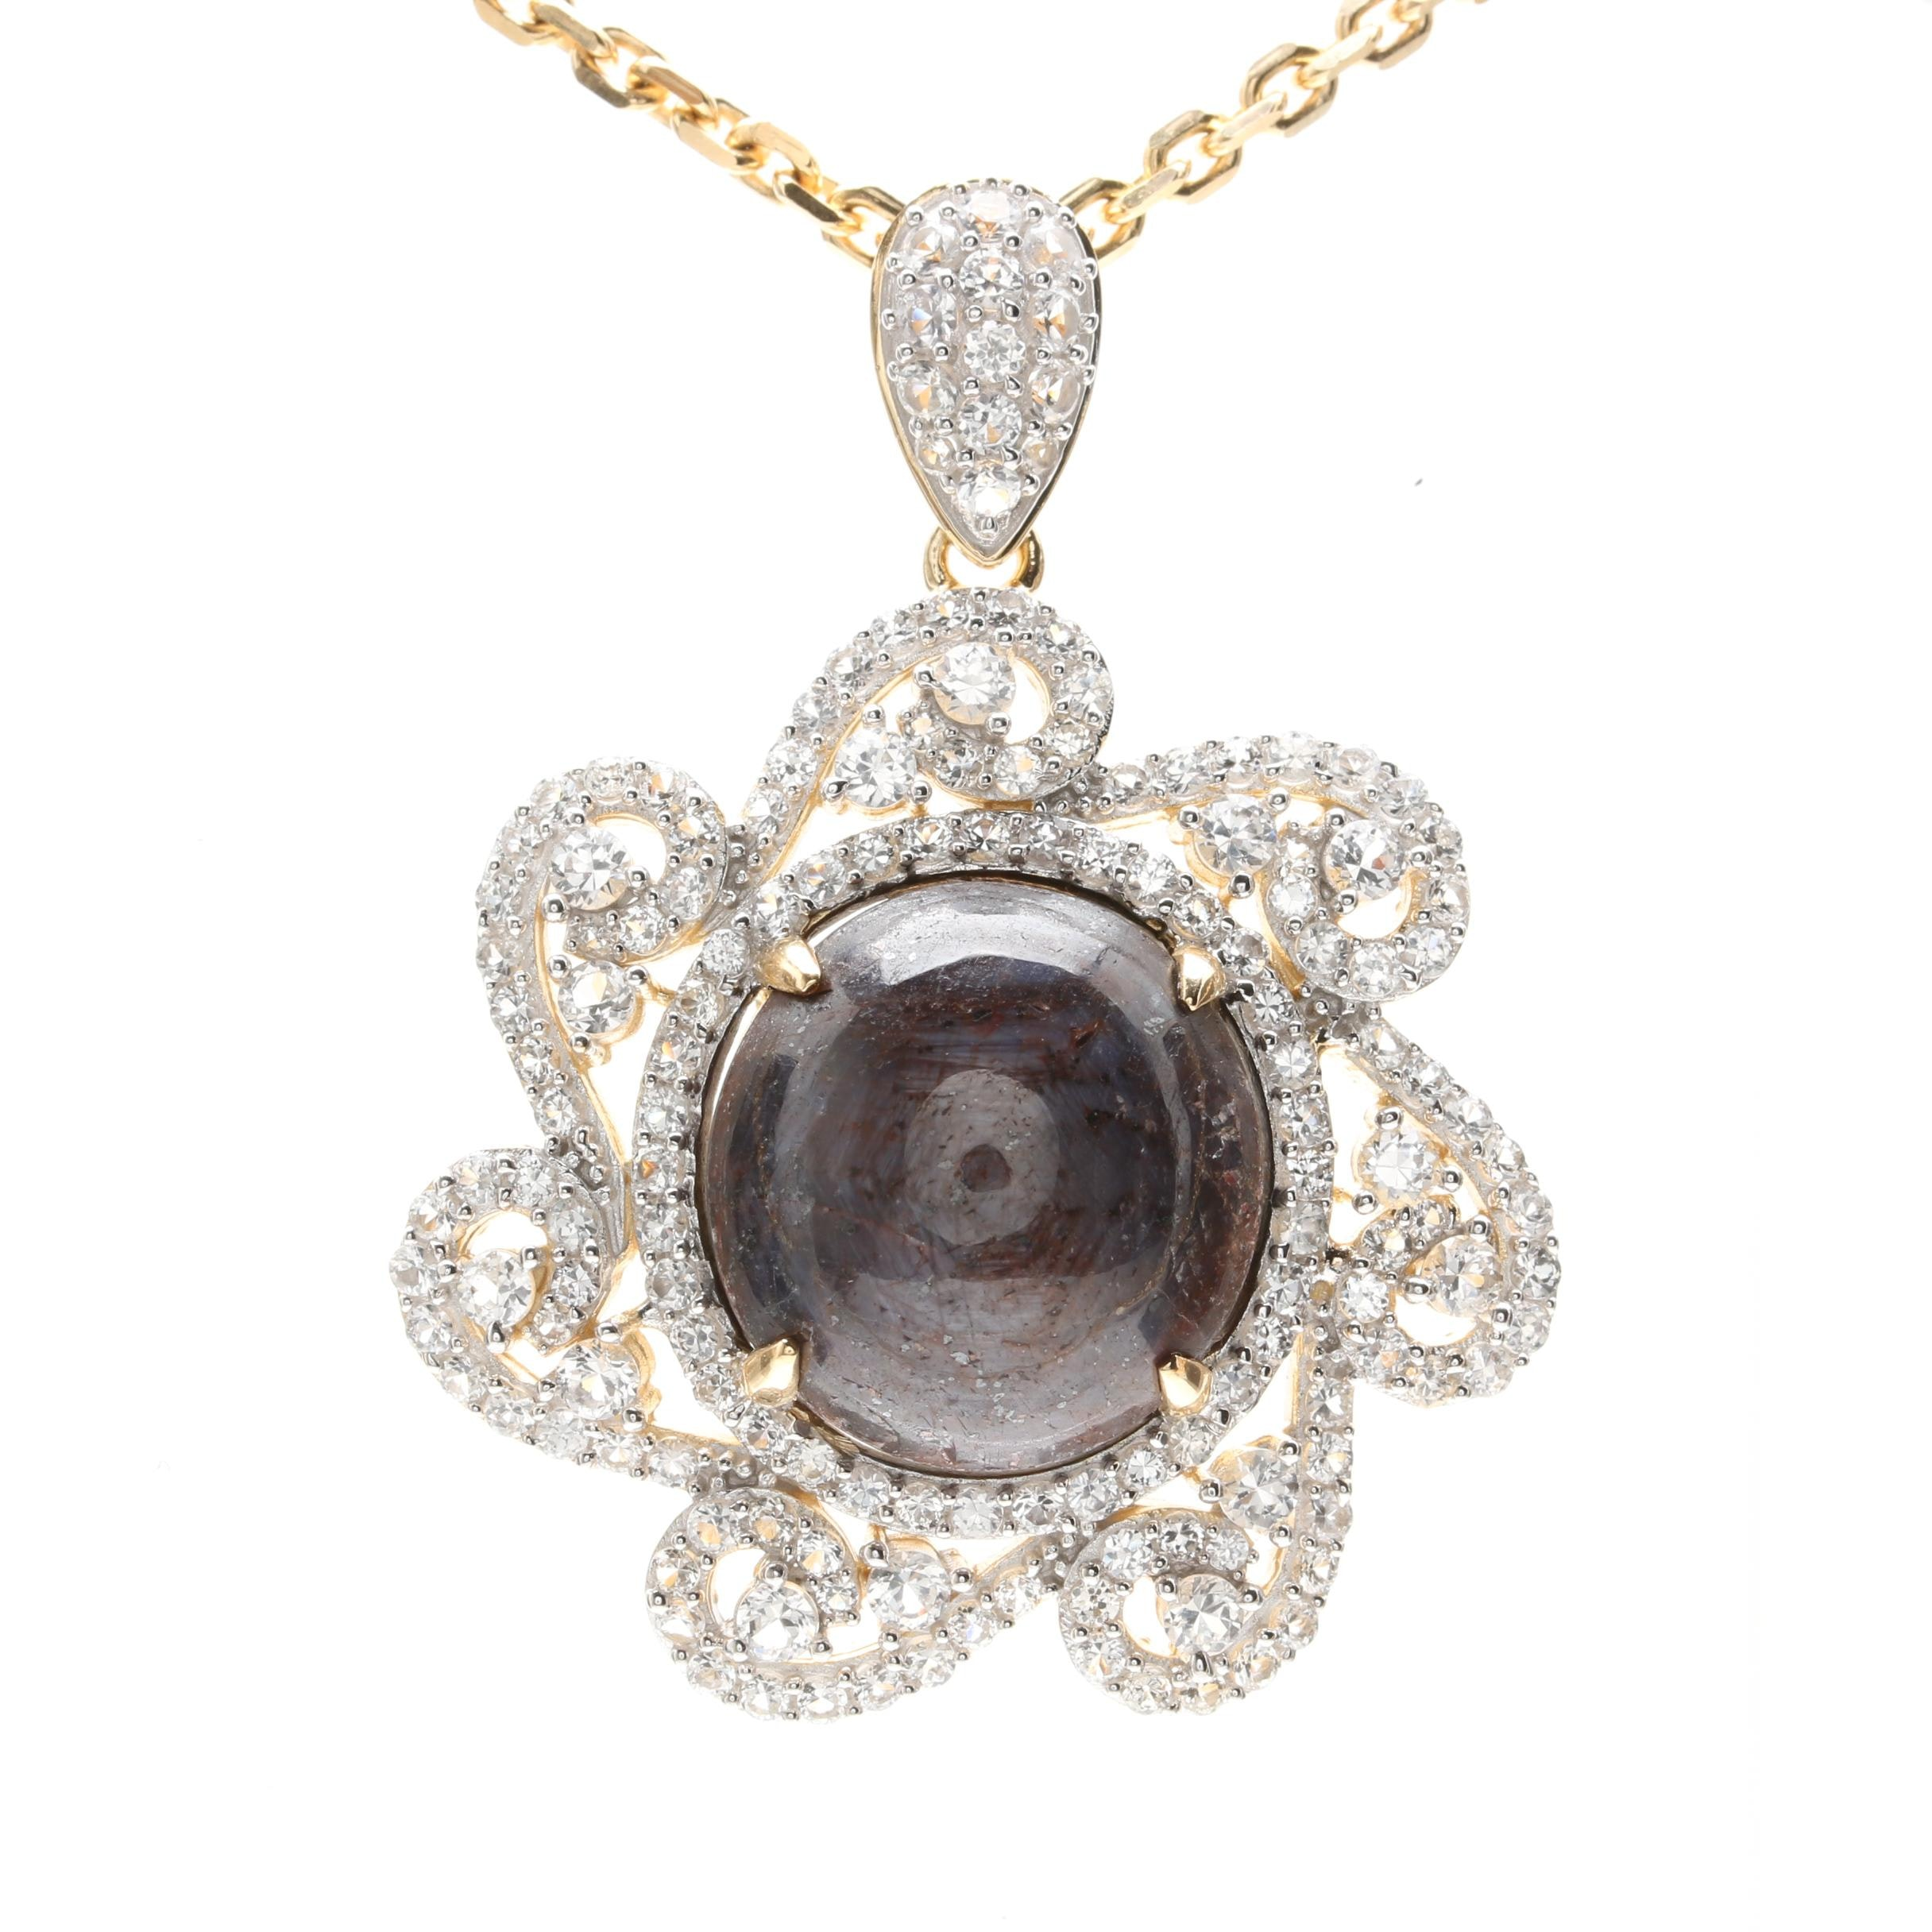 Gold Wash on Sterling Silver 38.79 CT Star Corundum and White Sapphire Necklace